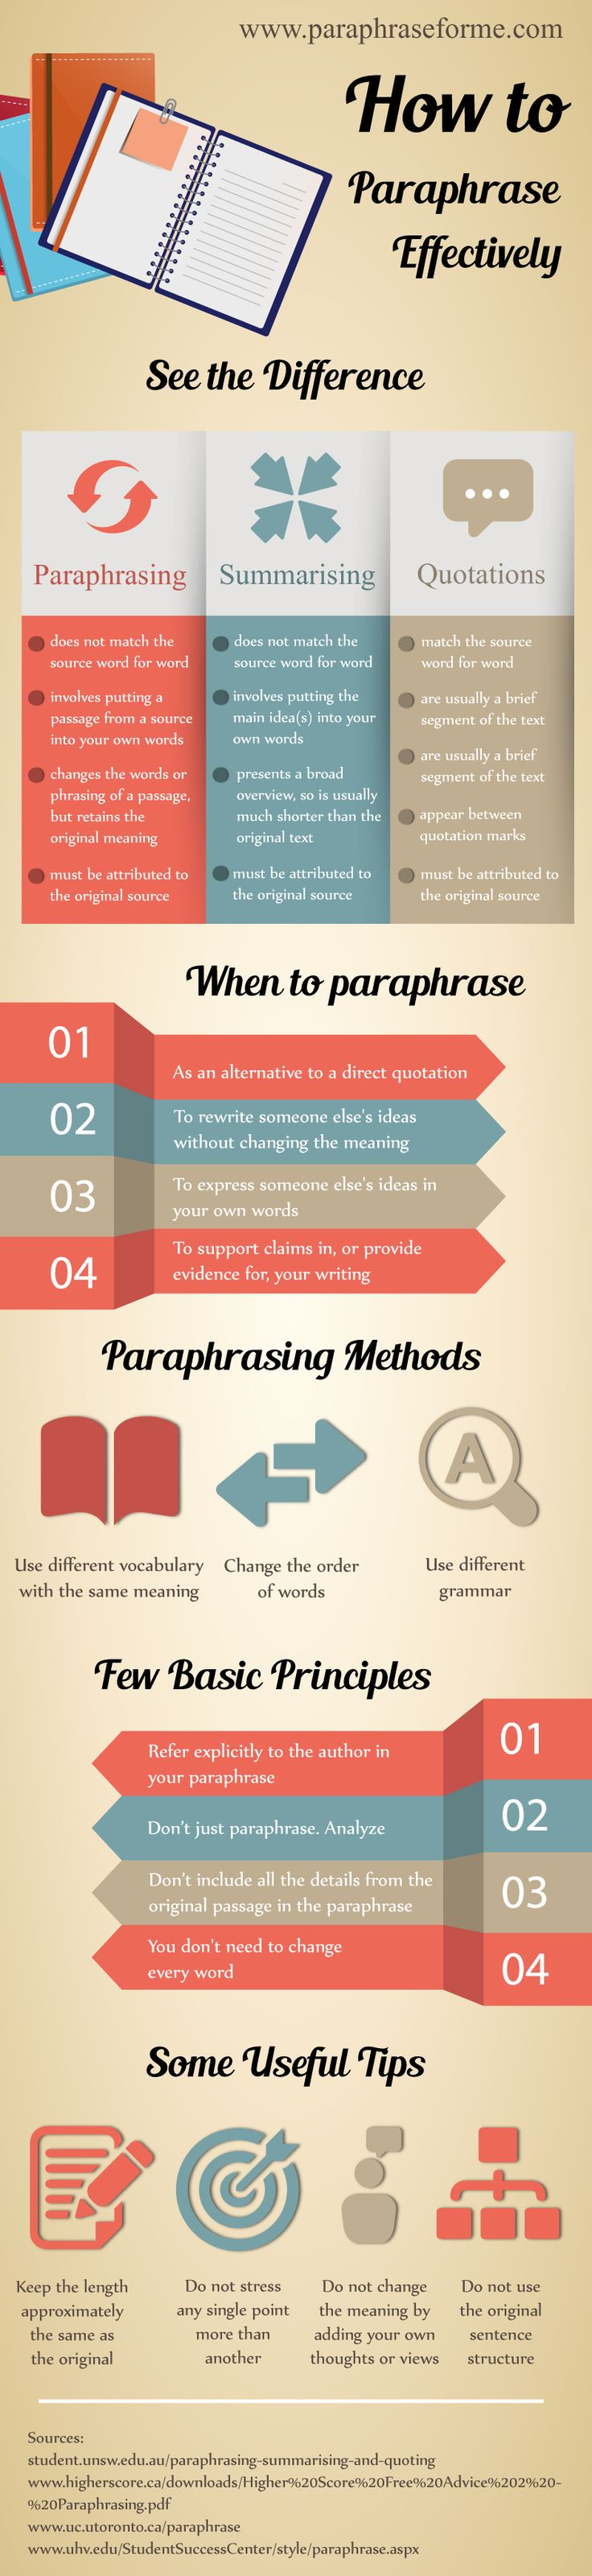 best ideas about examples of plagiarism avoiding this link explains how to paraphrase effectively so plagiarism is avoided it will be very useful to you when we write your english papers